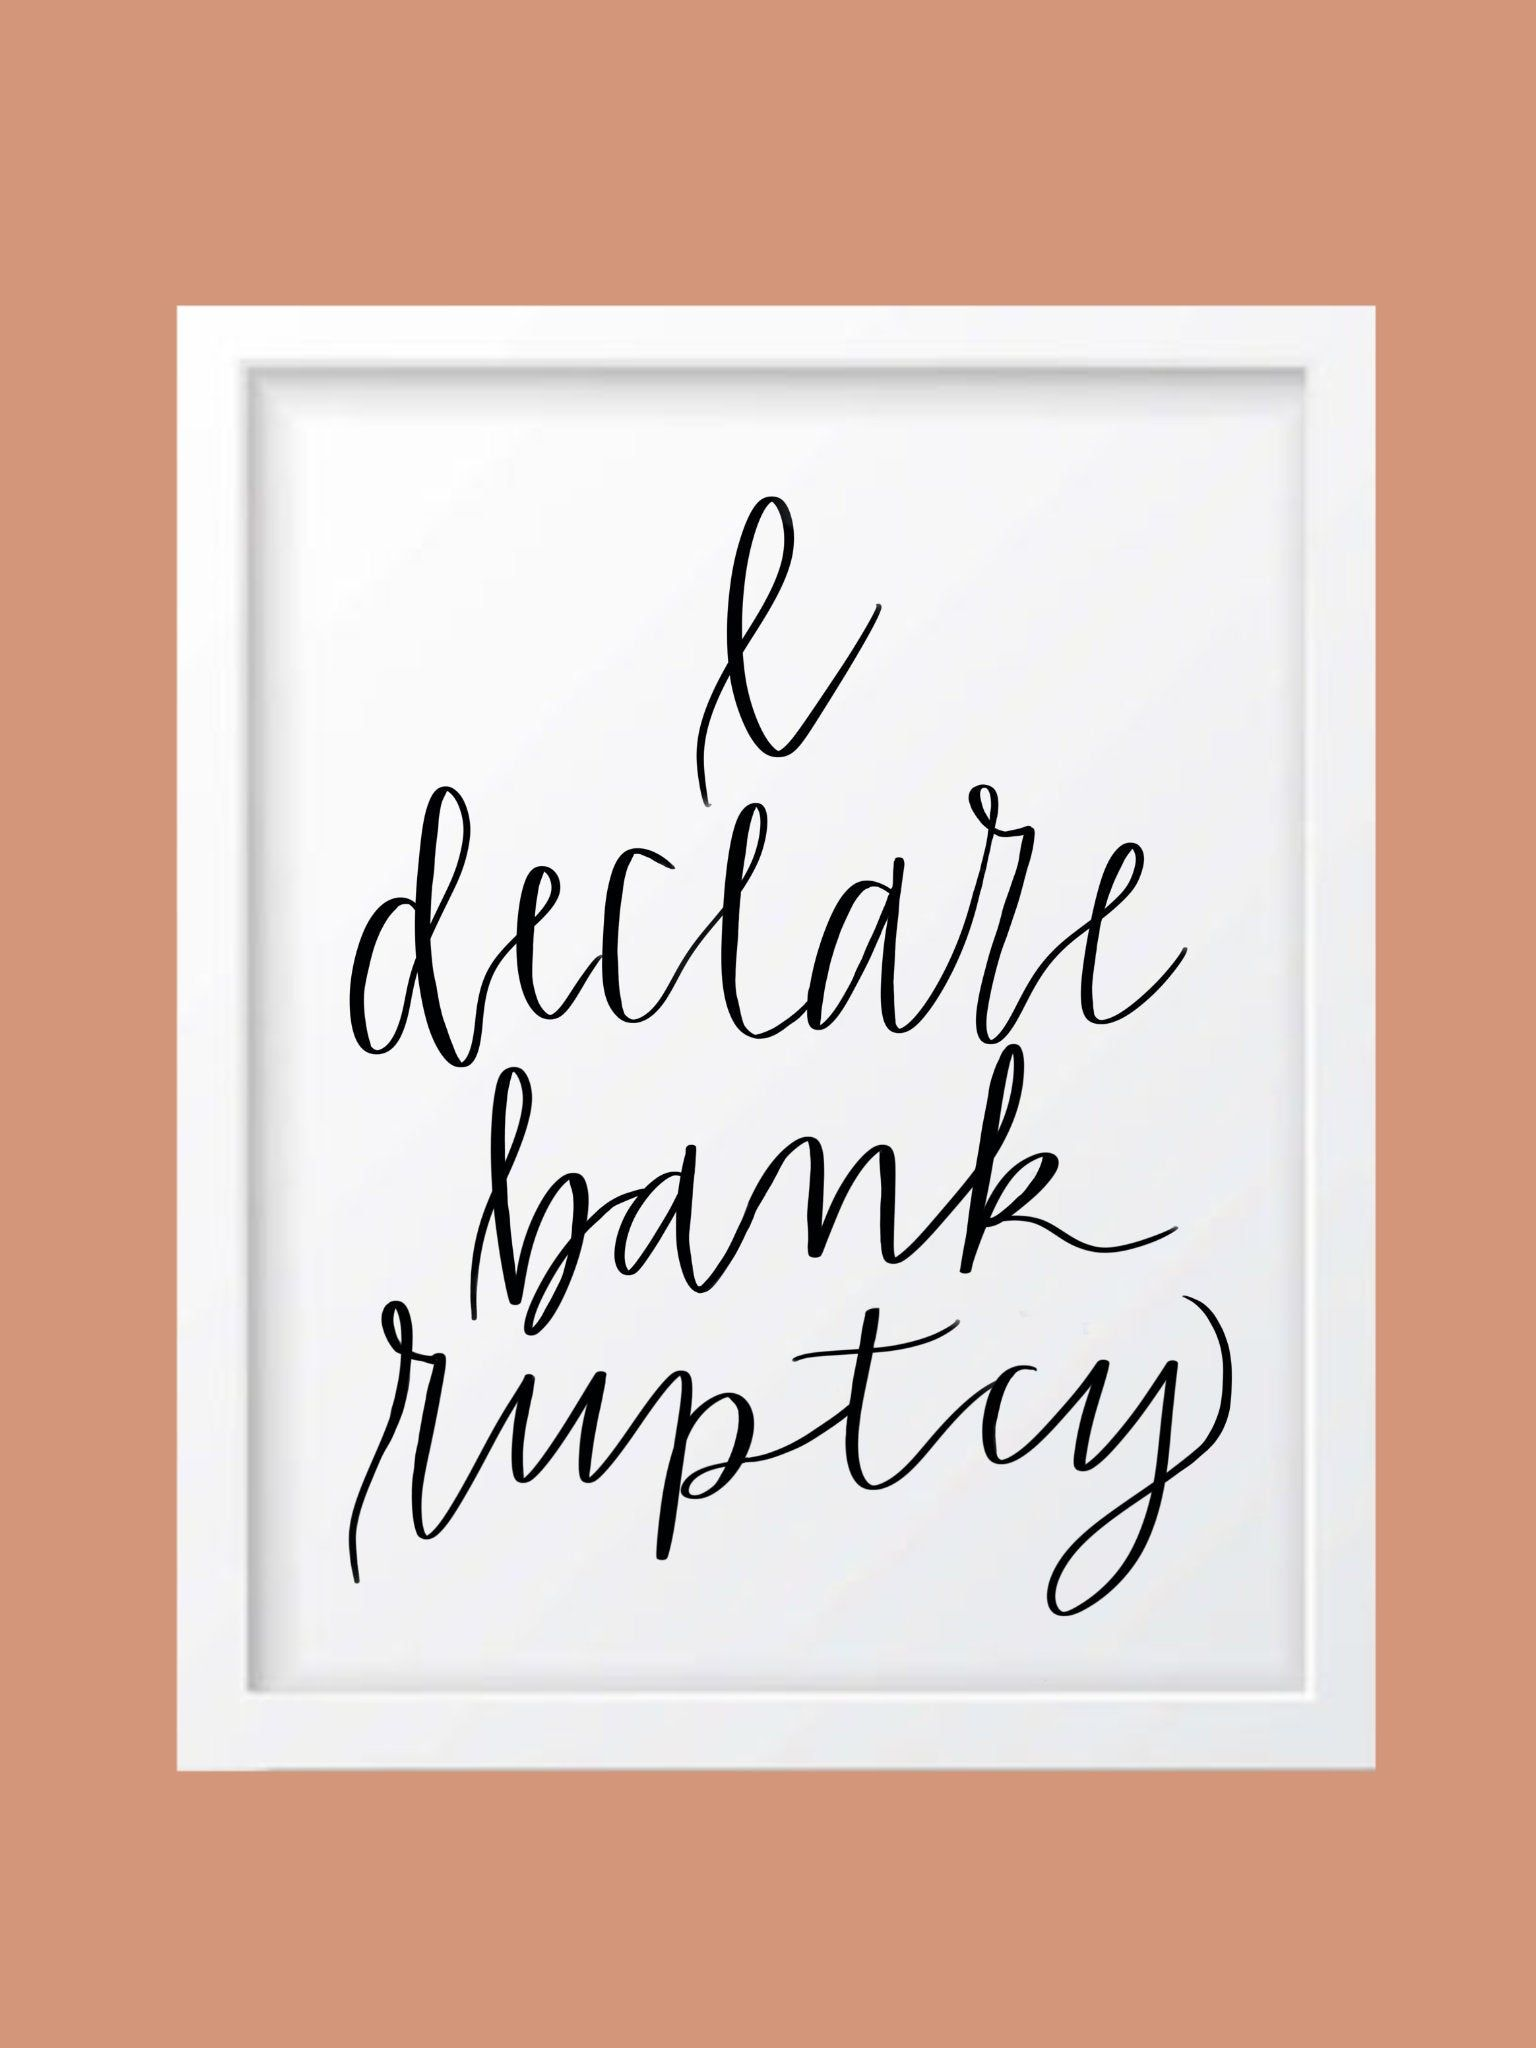 I Declare Bankruptcy Michael Scott The Office Quote Downloadable By Lasisterscloset On Etsy Michael Scott The Office Office Quotes Michael Scott